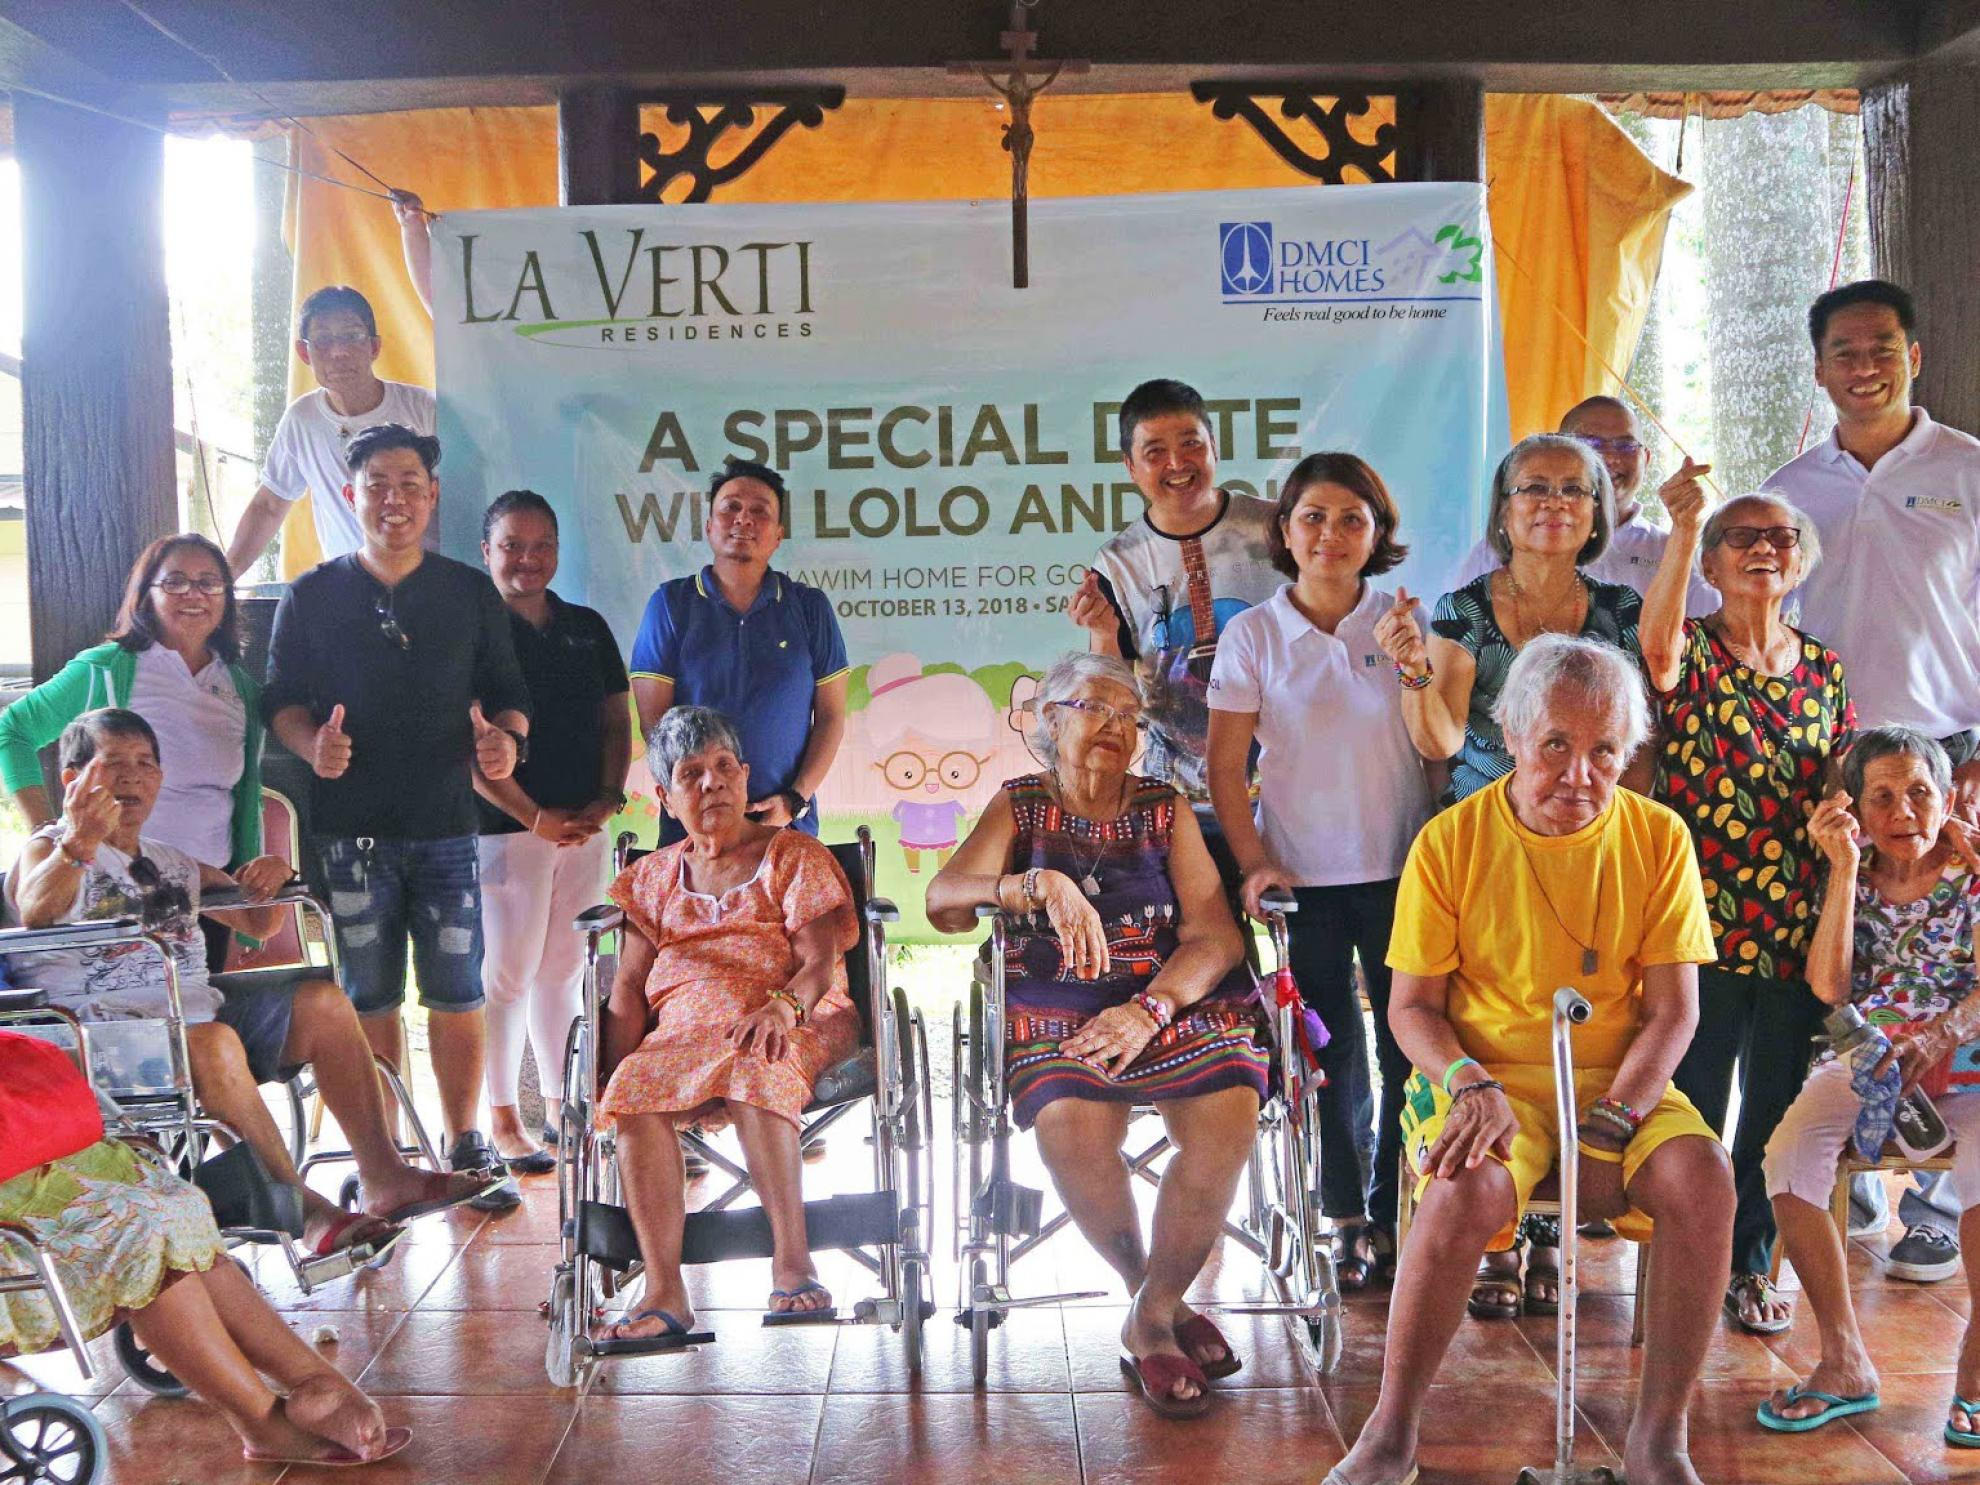 DMCI Homes condo community shows love for poor and abandoned elderly